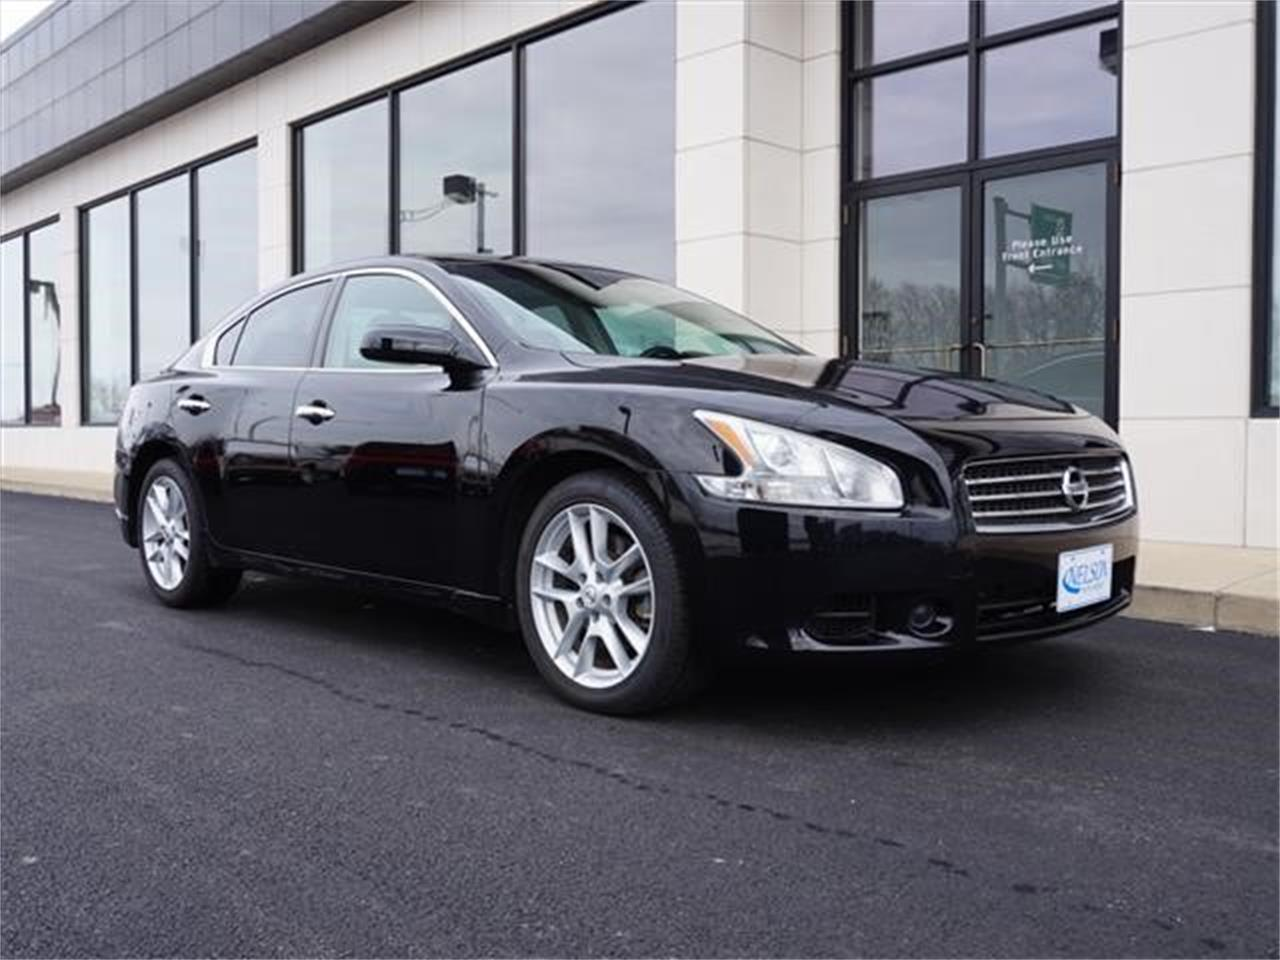 Large Picture of 2010 Nissan Maxima located in Ohio - $9,999.00 Offered by Nelson Automotive, Ltd. - KHAD